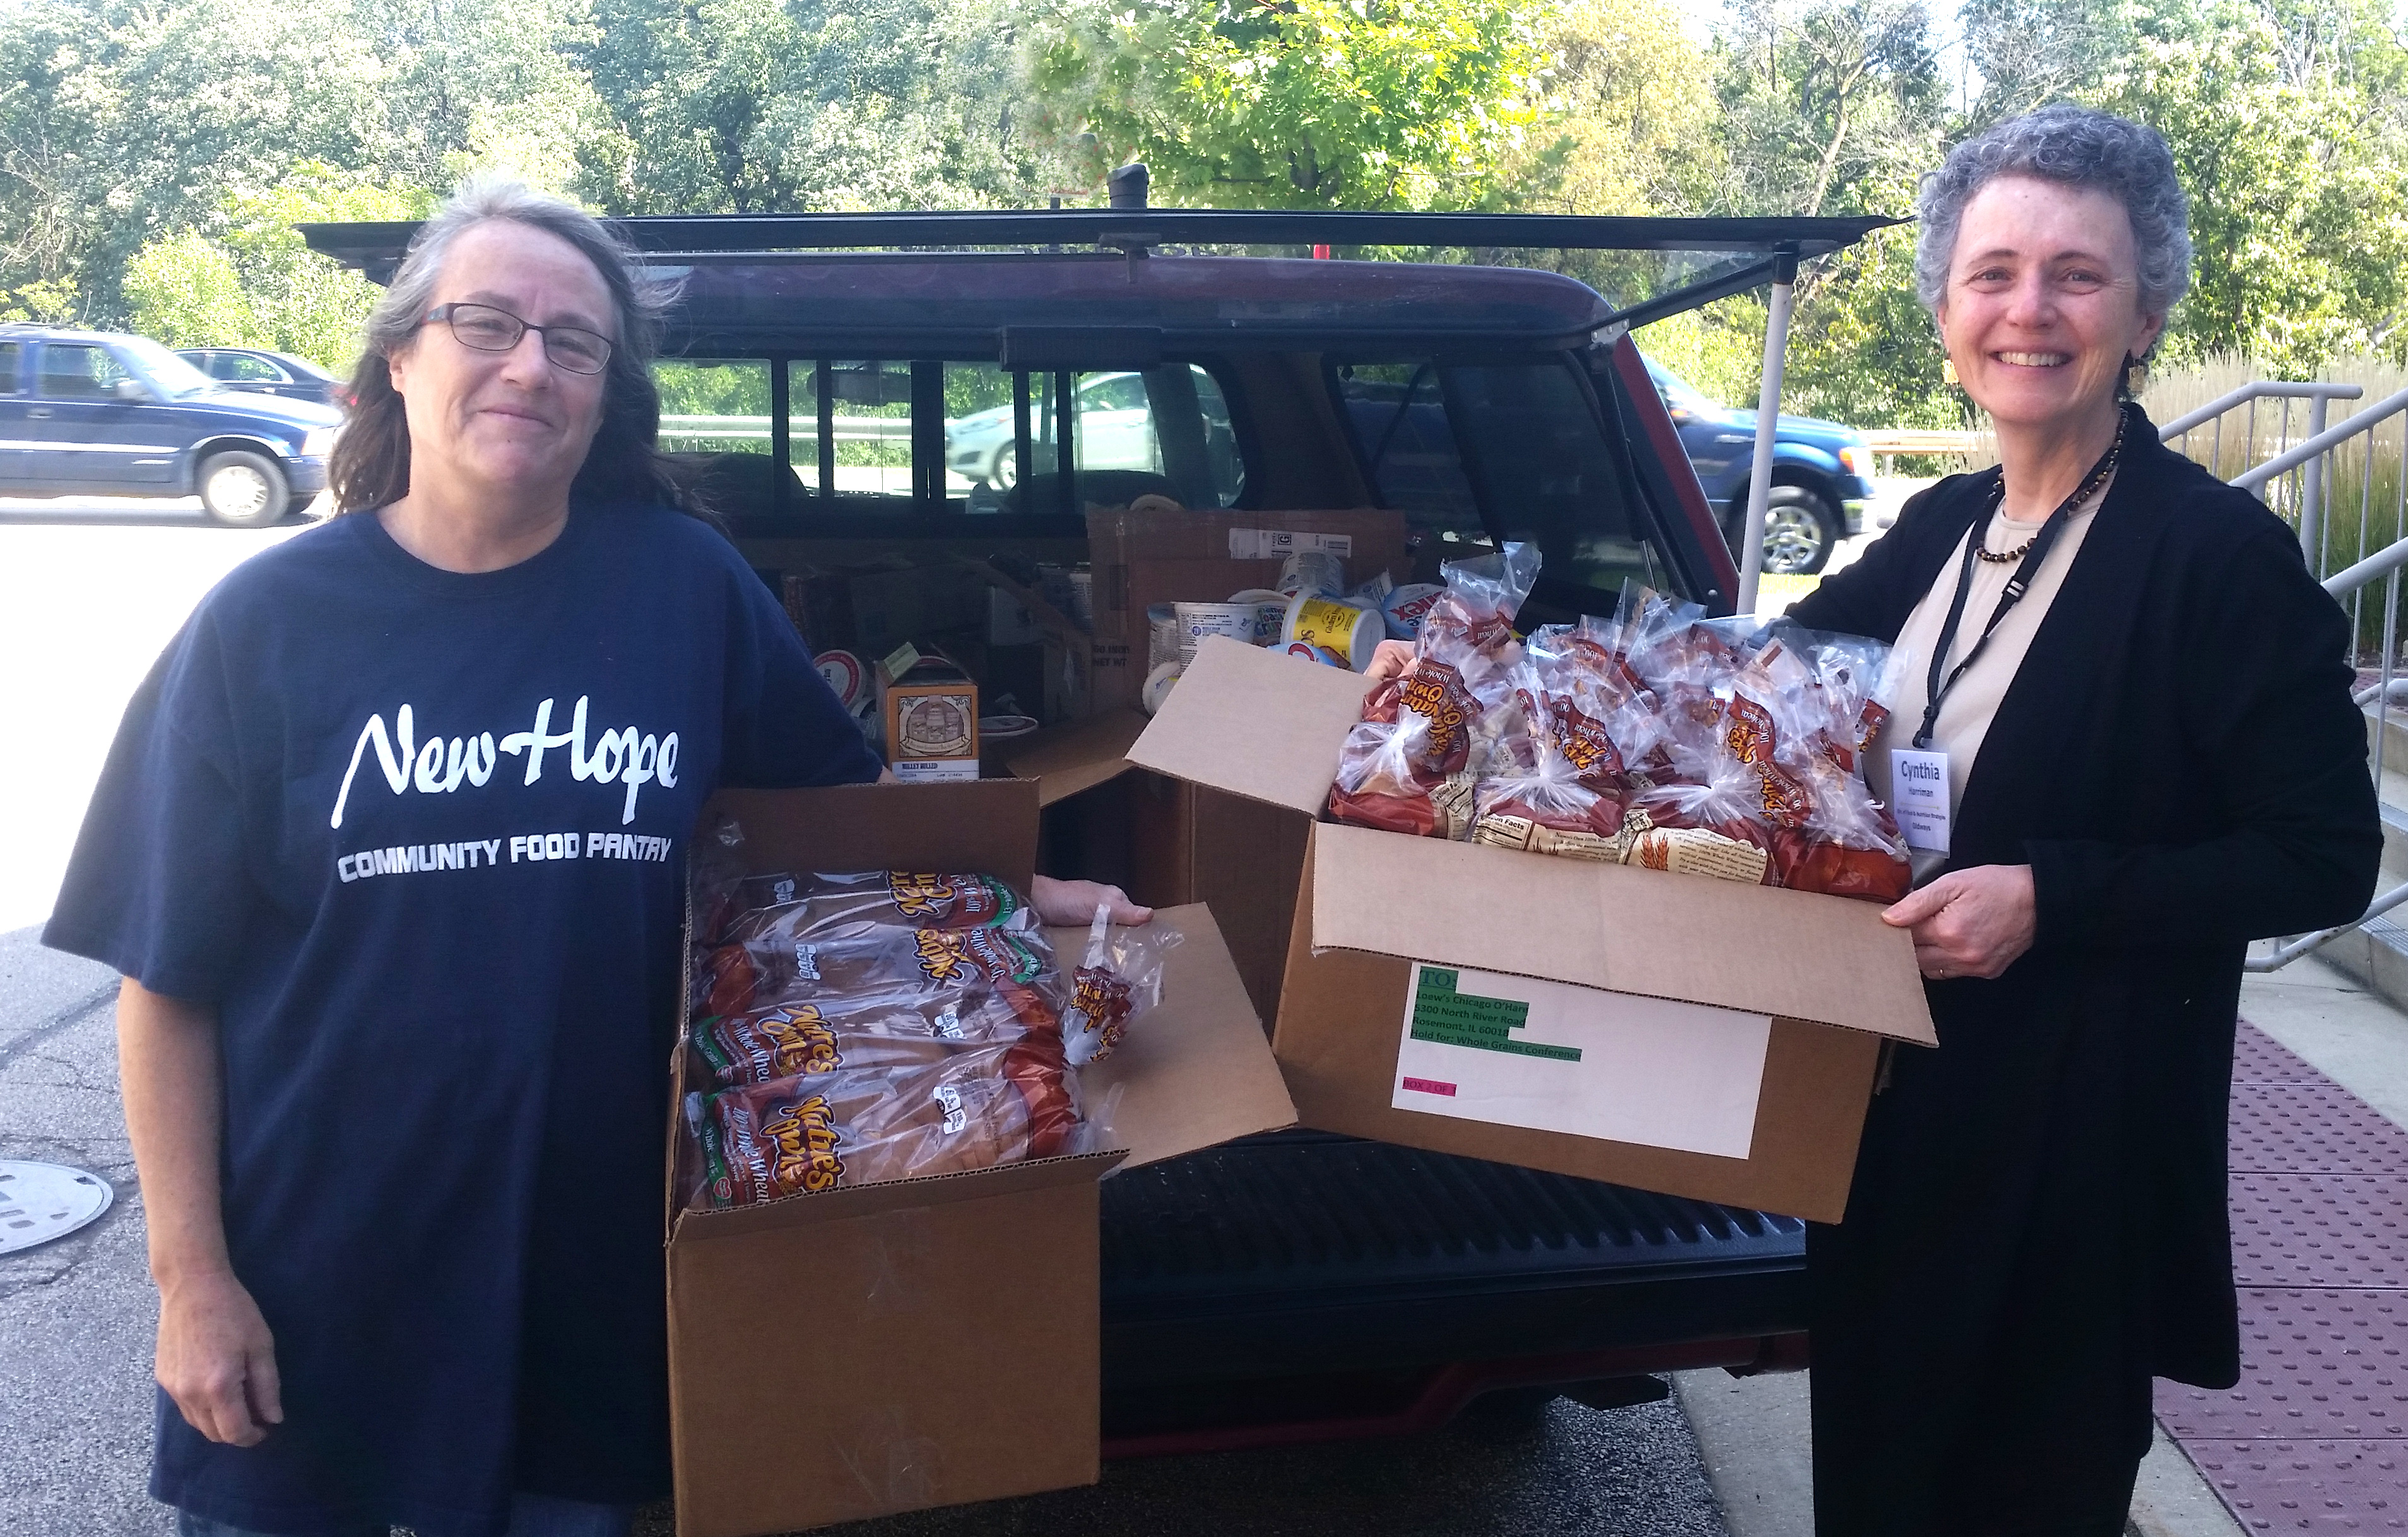 Donating food to the New Hope food pantry